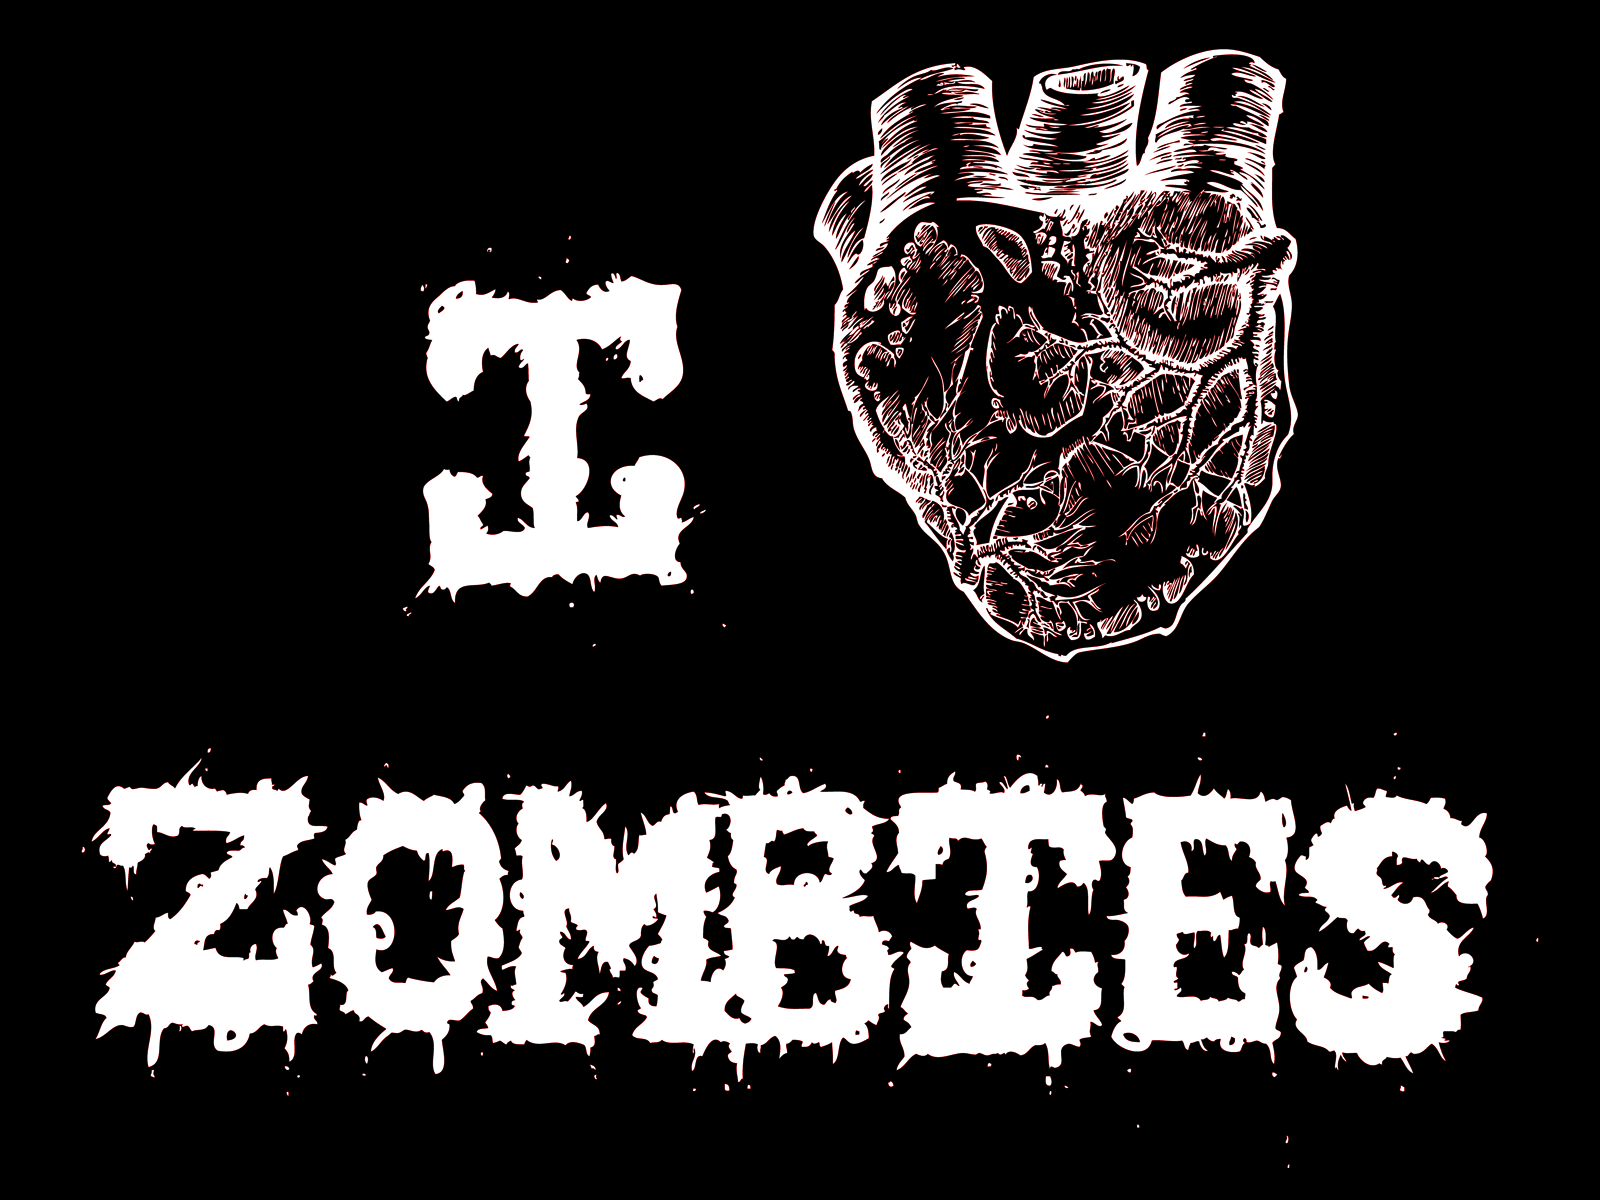 zombie wallpaper hd scary and horror scenery scary